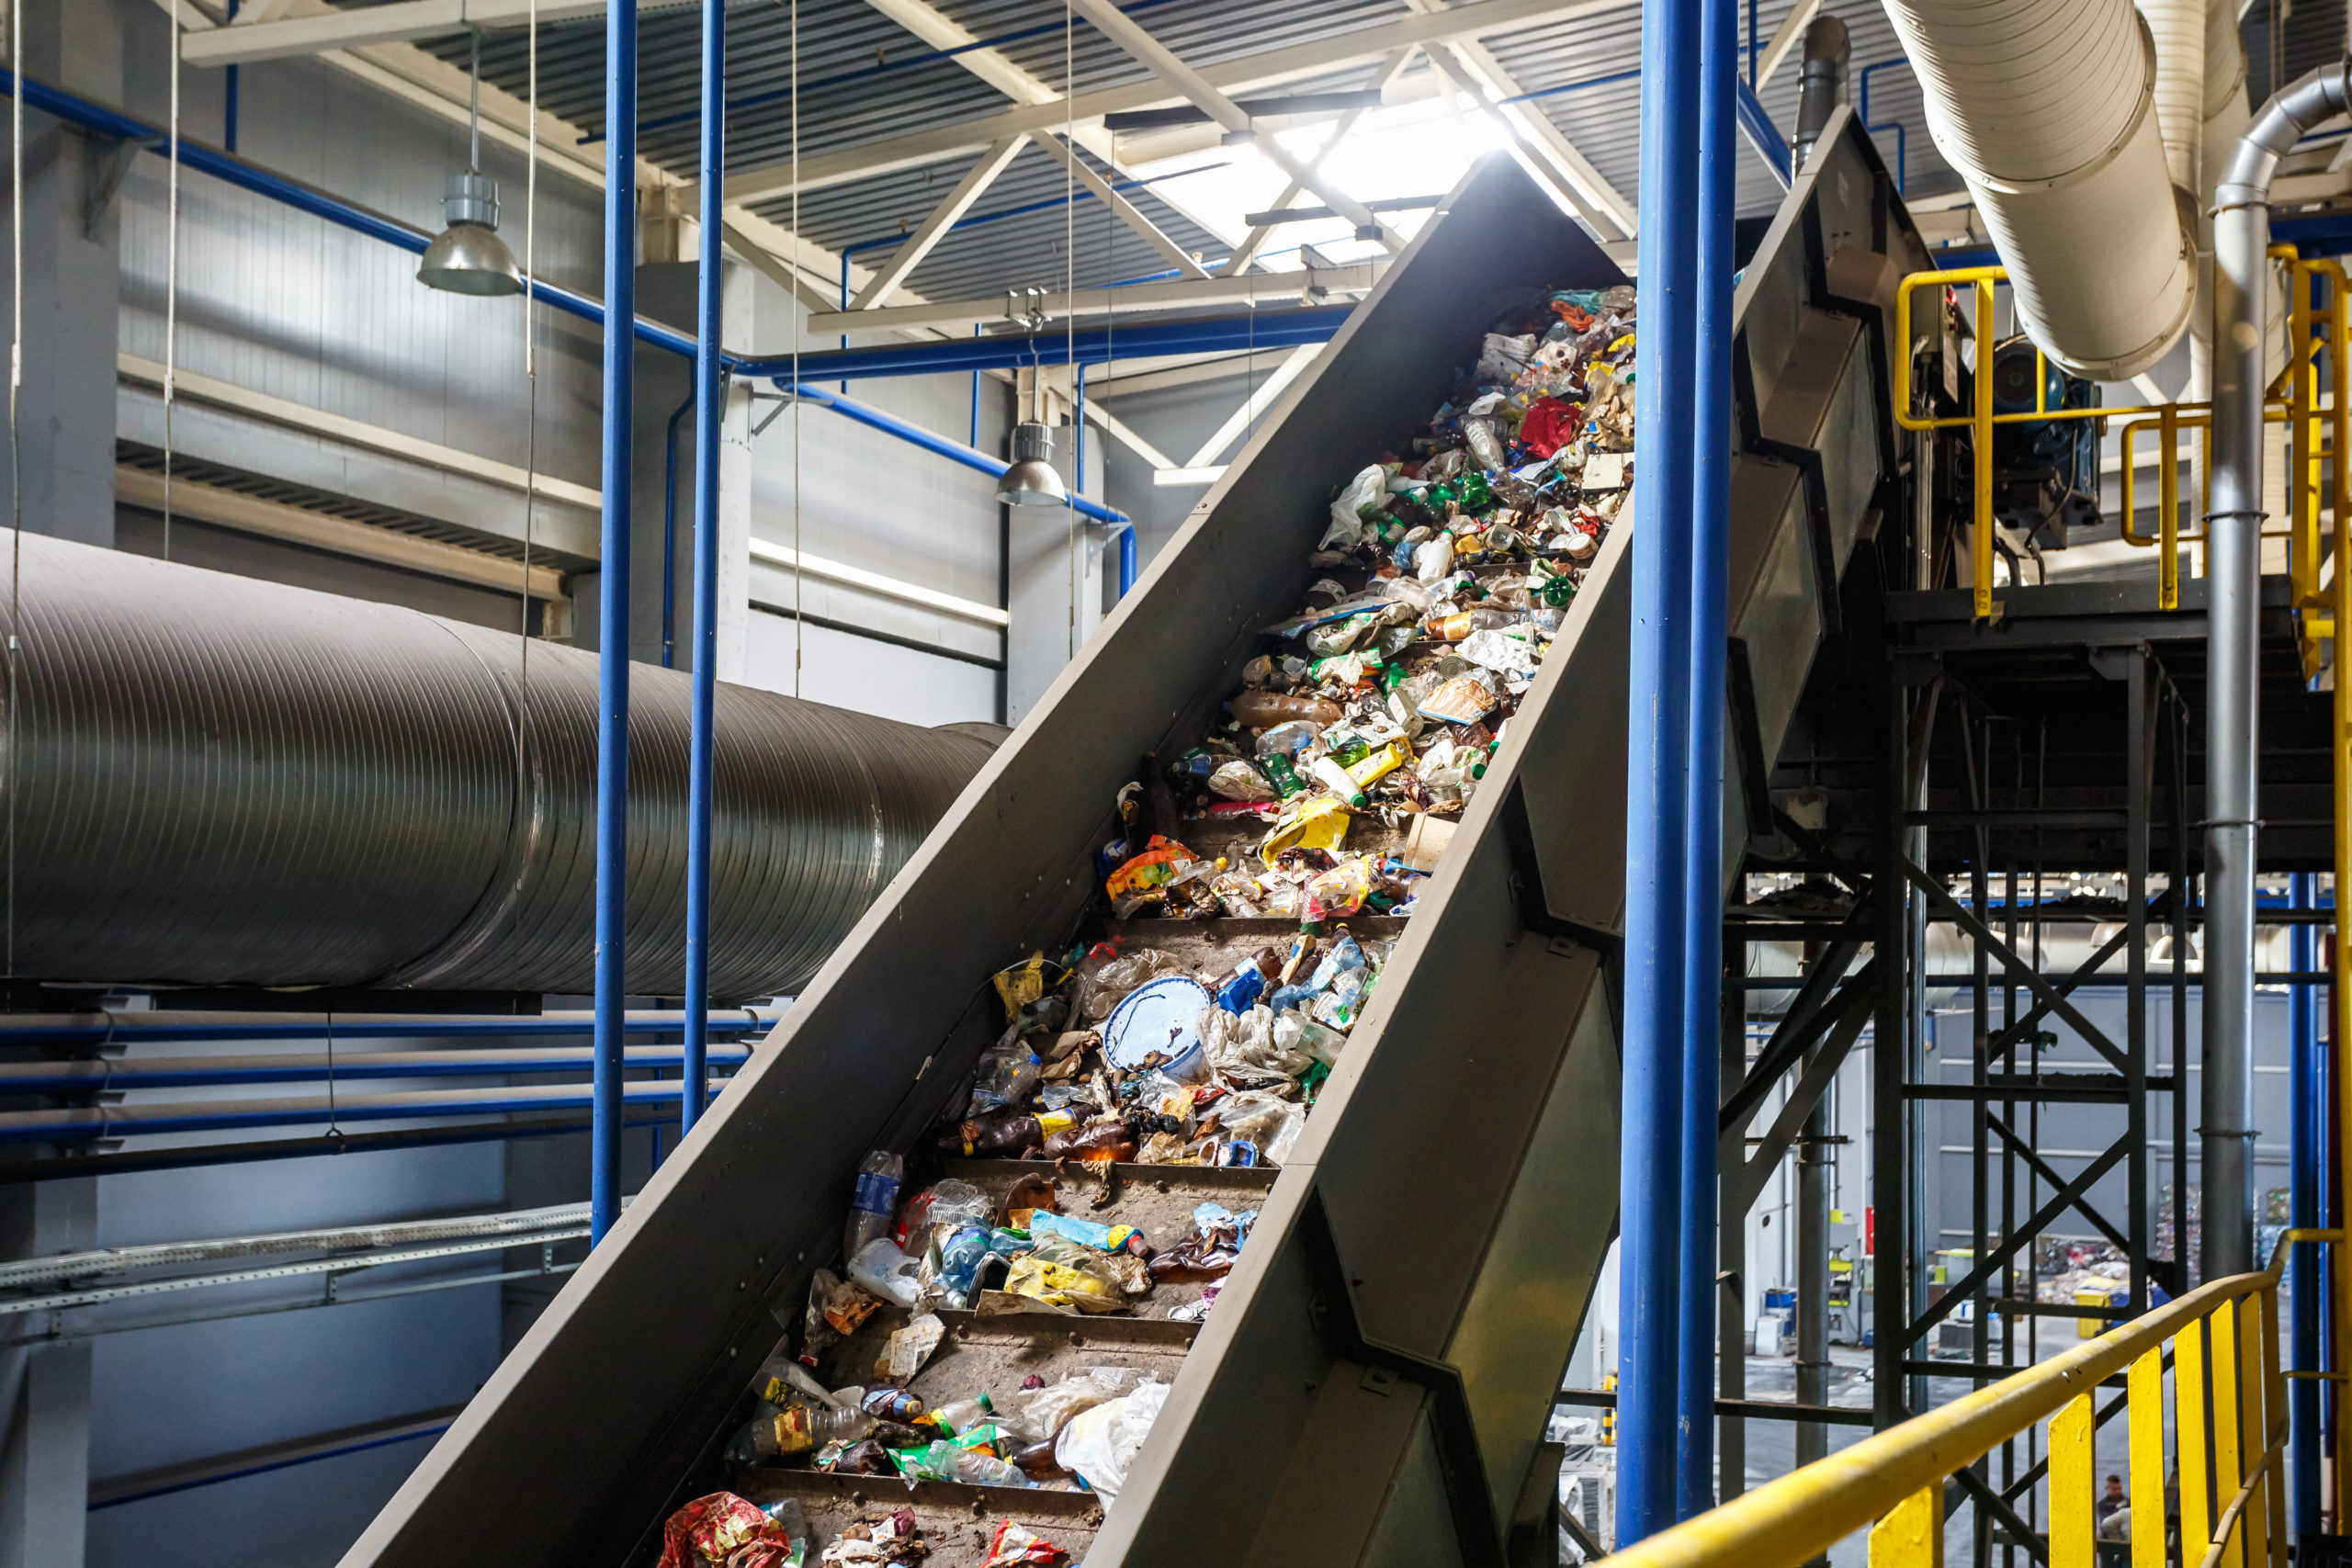 Province taking action to recycle more products